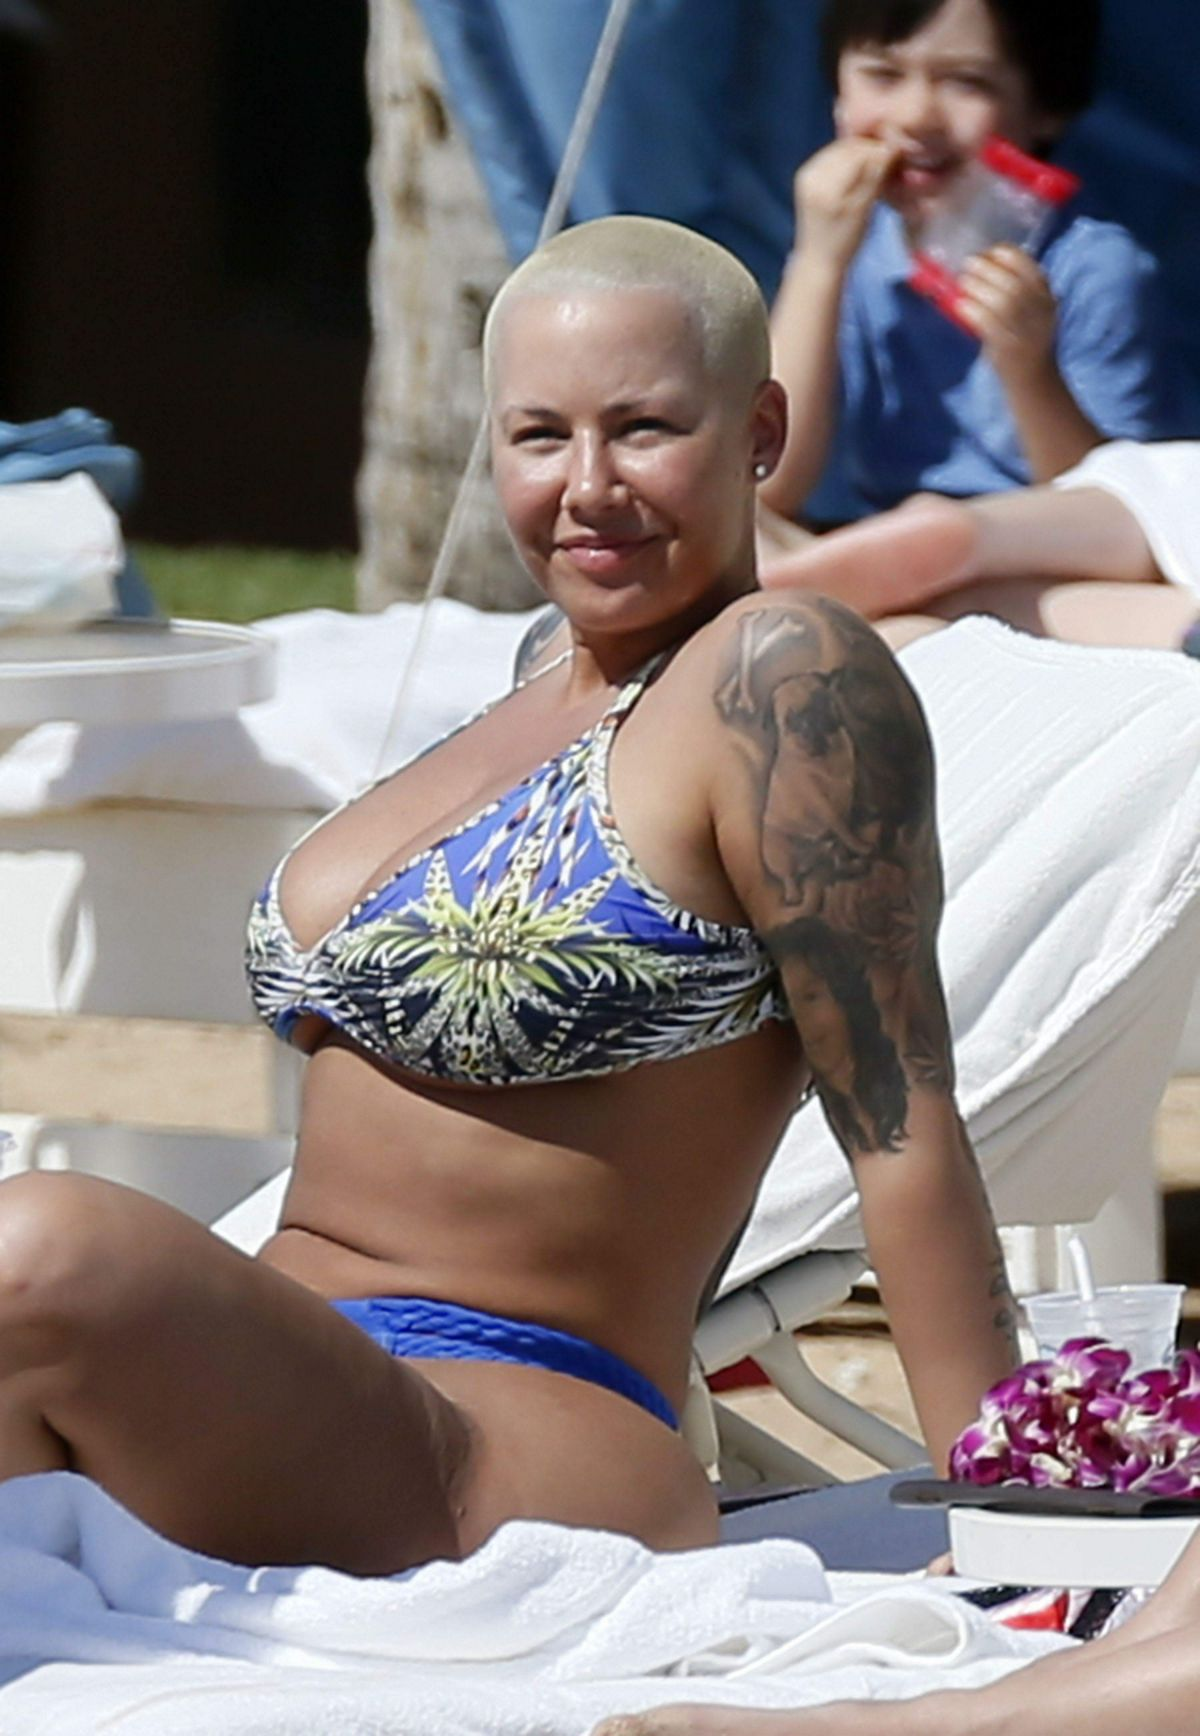 Amber rose naked pictures